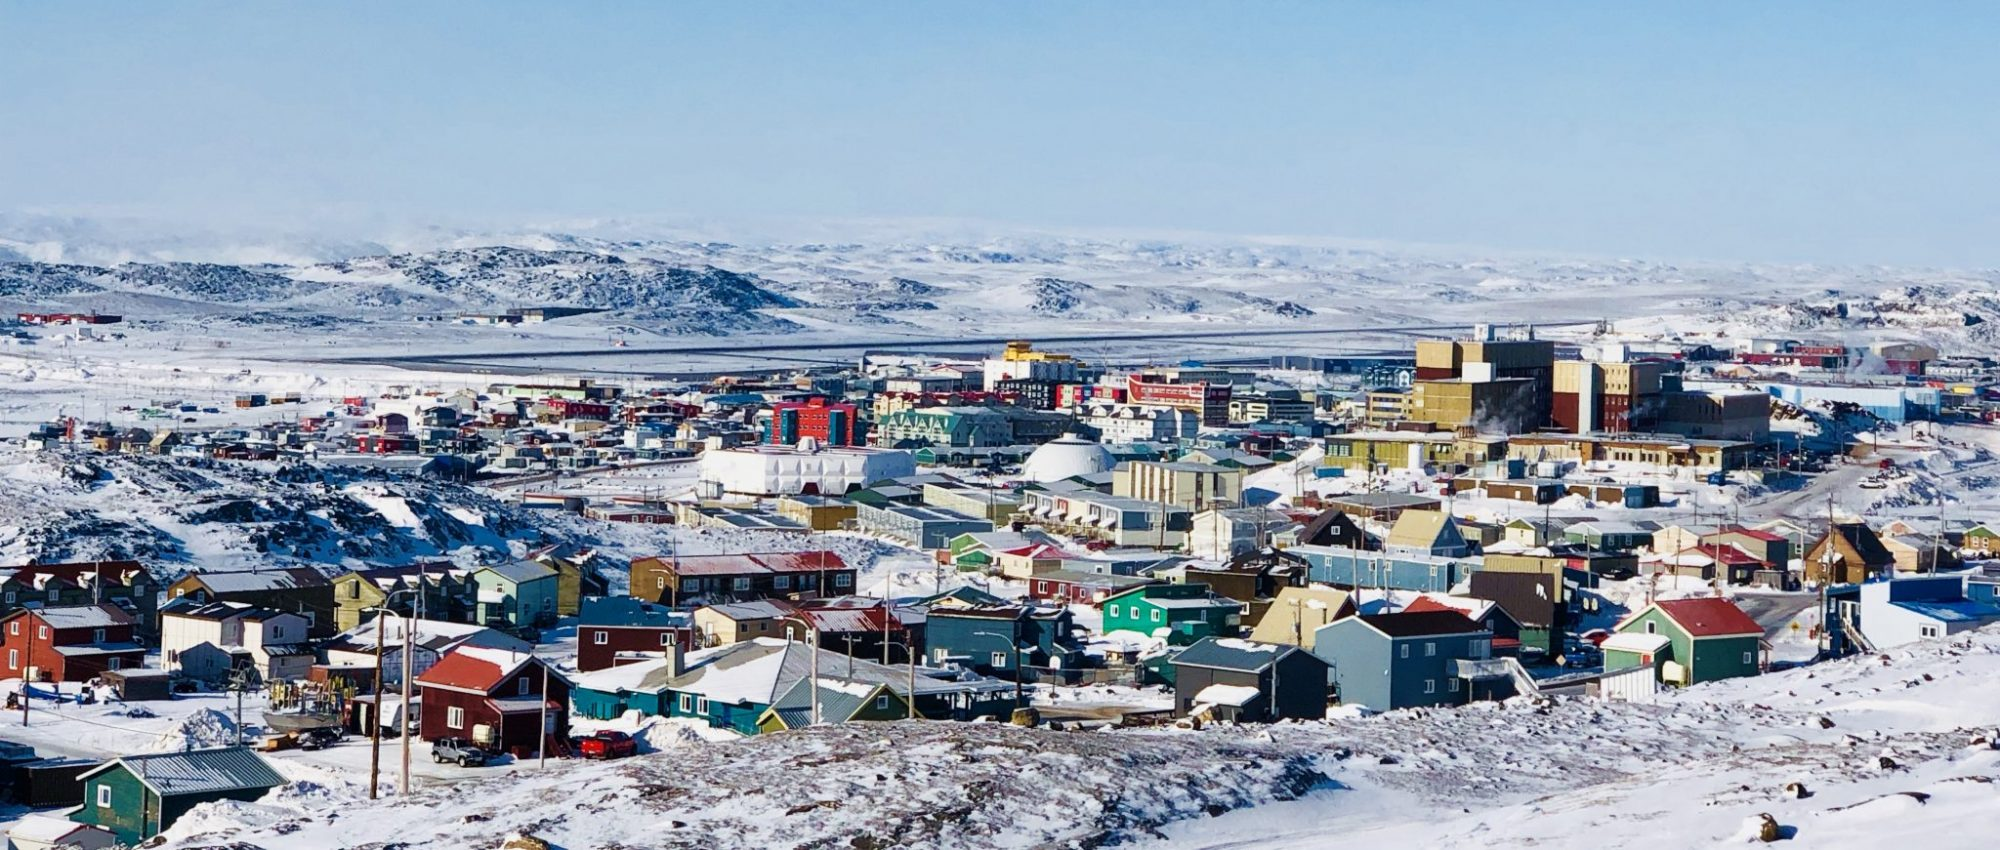 The Security of Arctic Communities: Food and Infrastructure